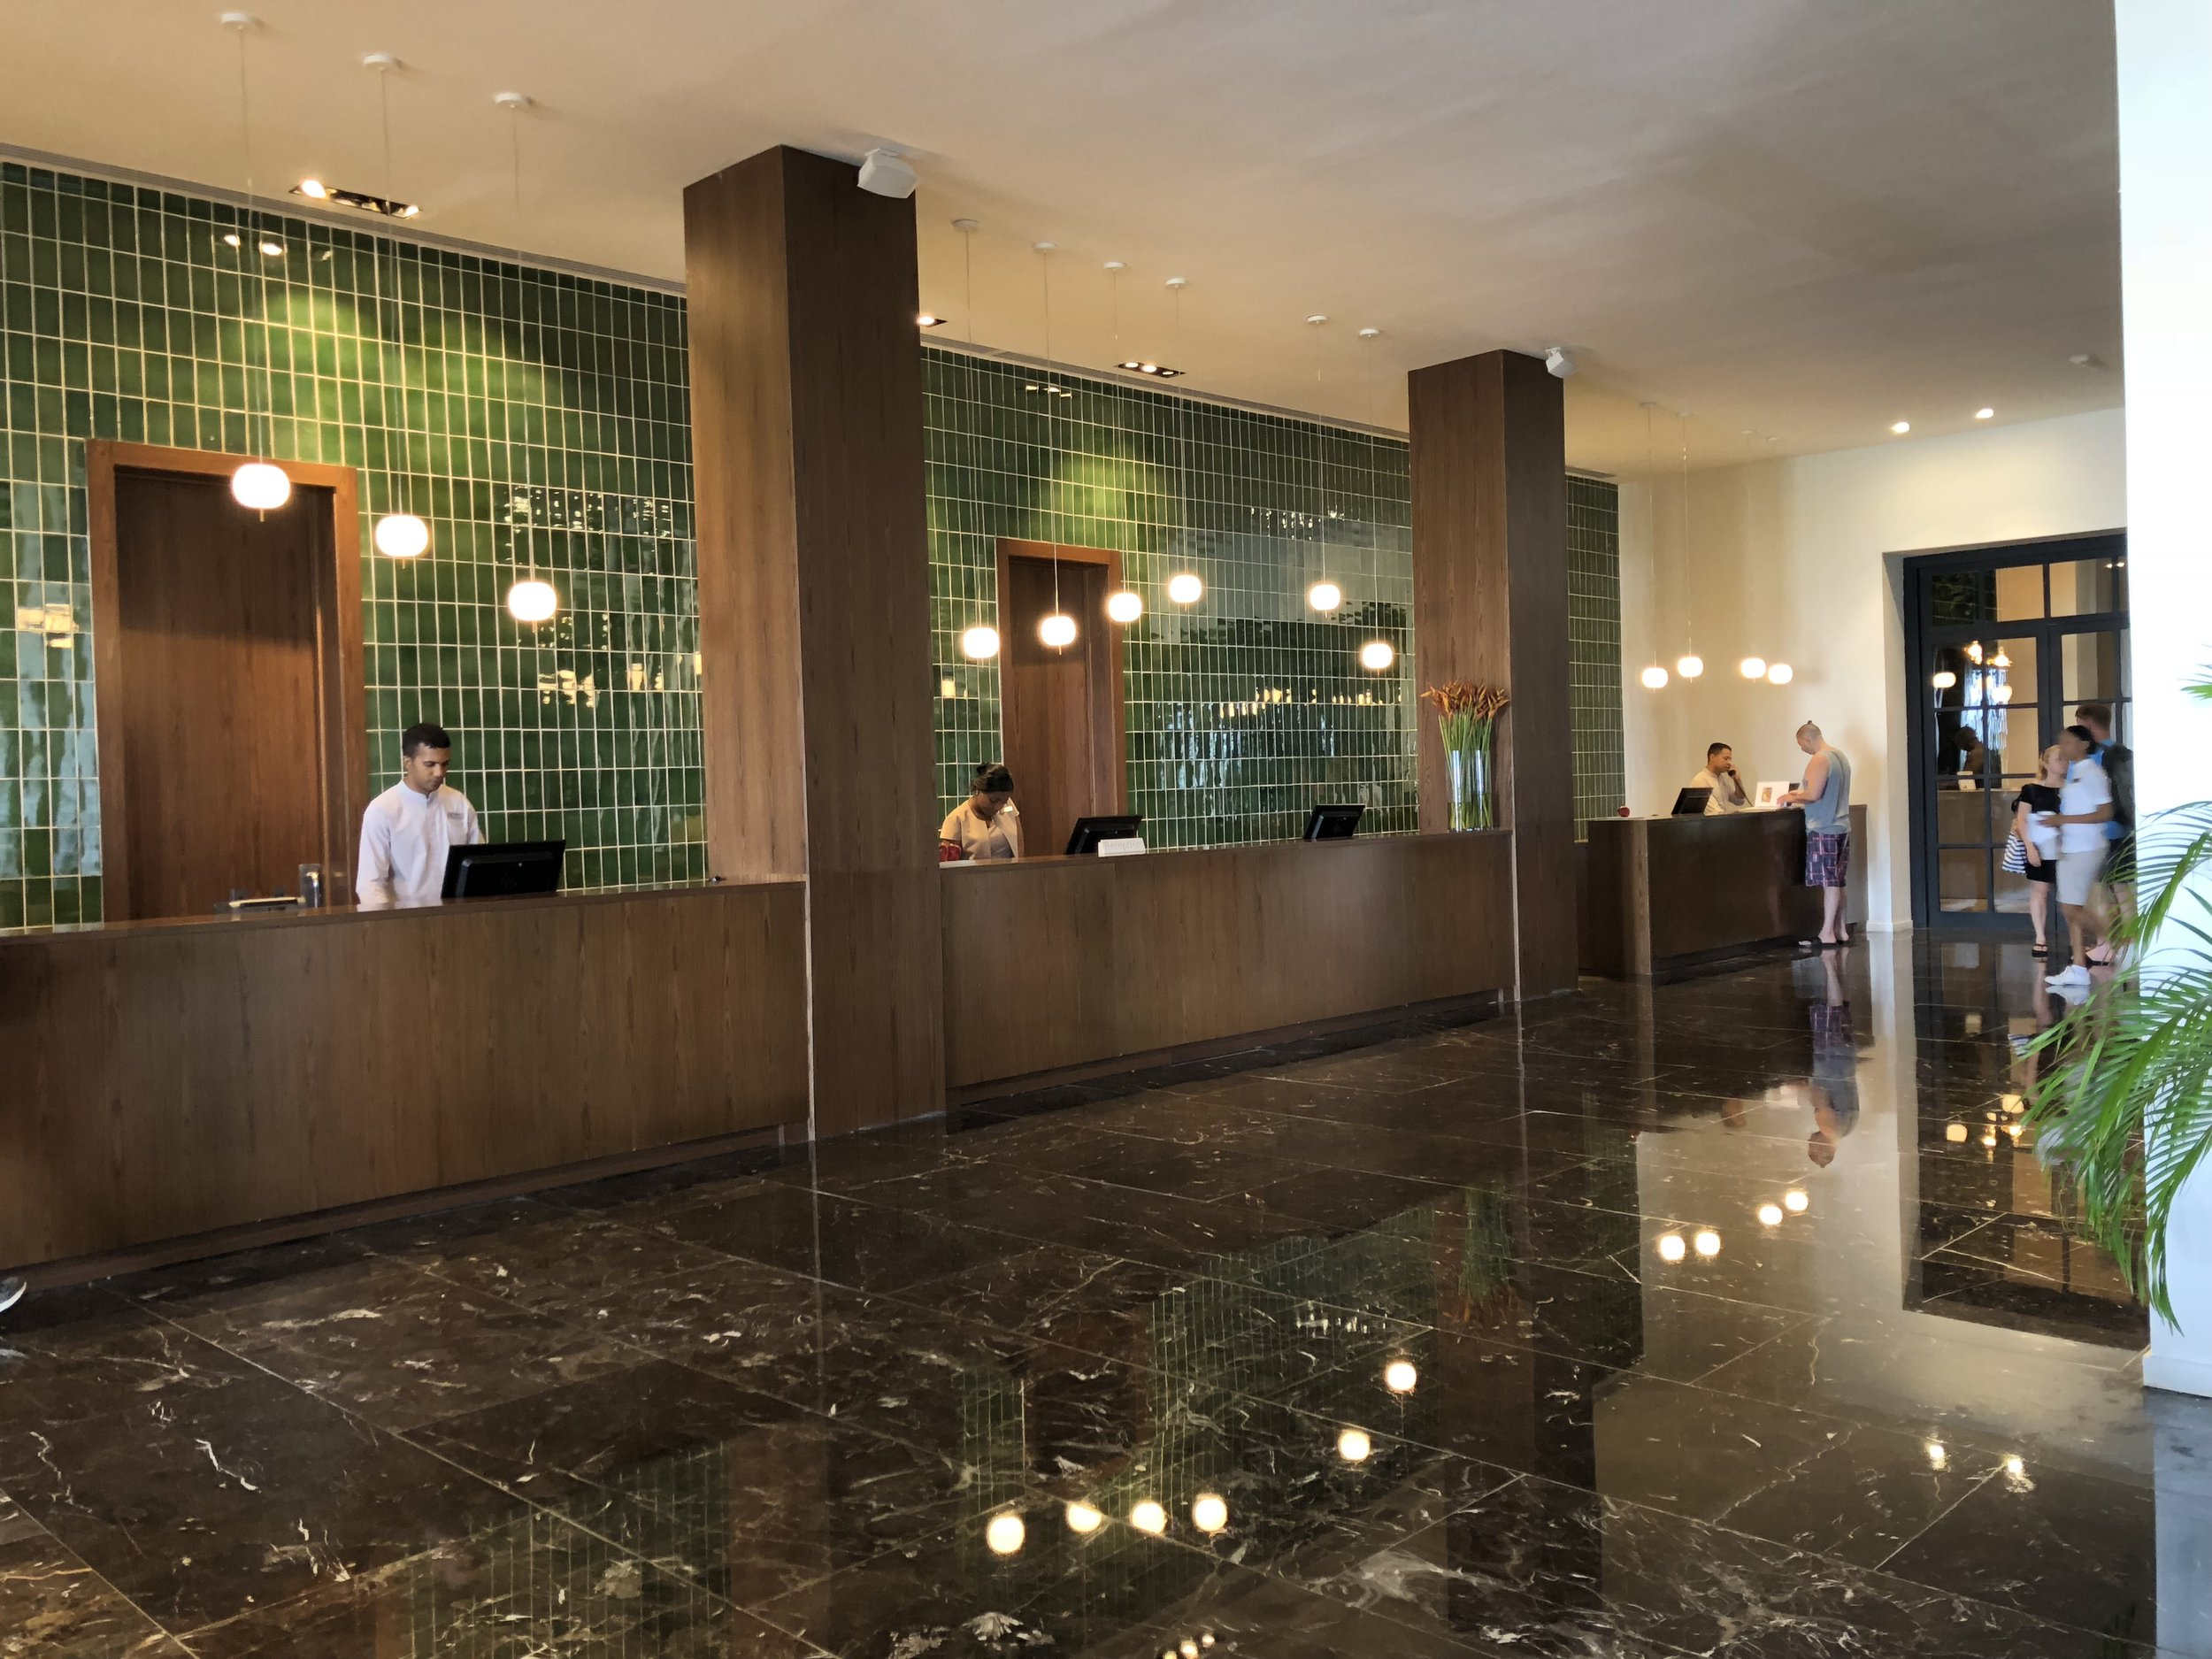 The front desk is on the left hand side of the upper part of the main lobby.